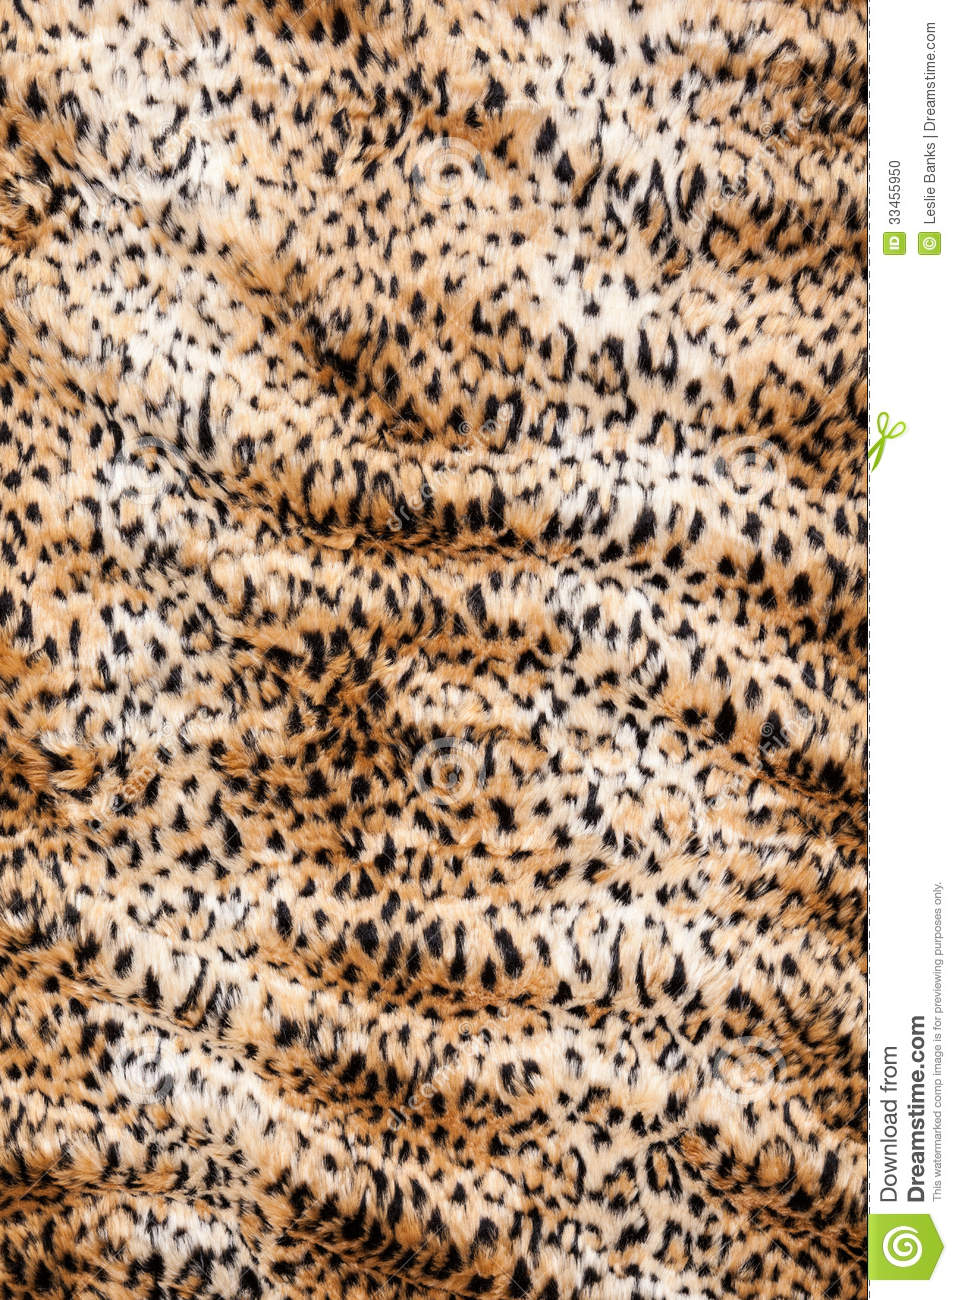 Animal Print Blanket Stock Photo Image Of Blanket Leopard 33455950